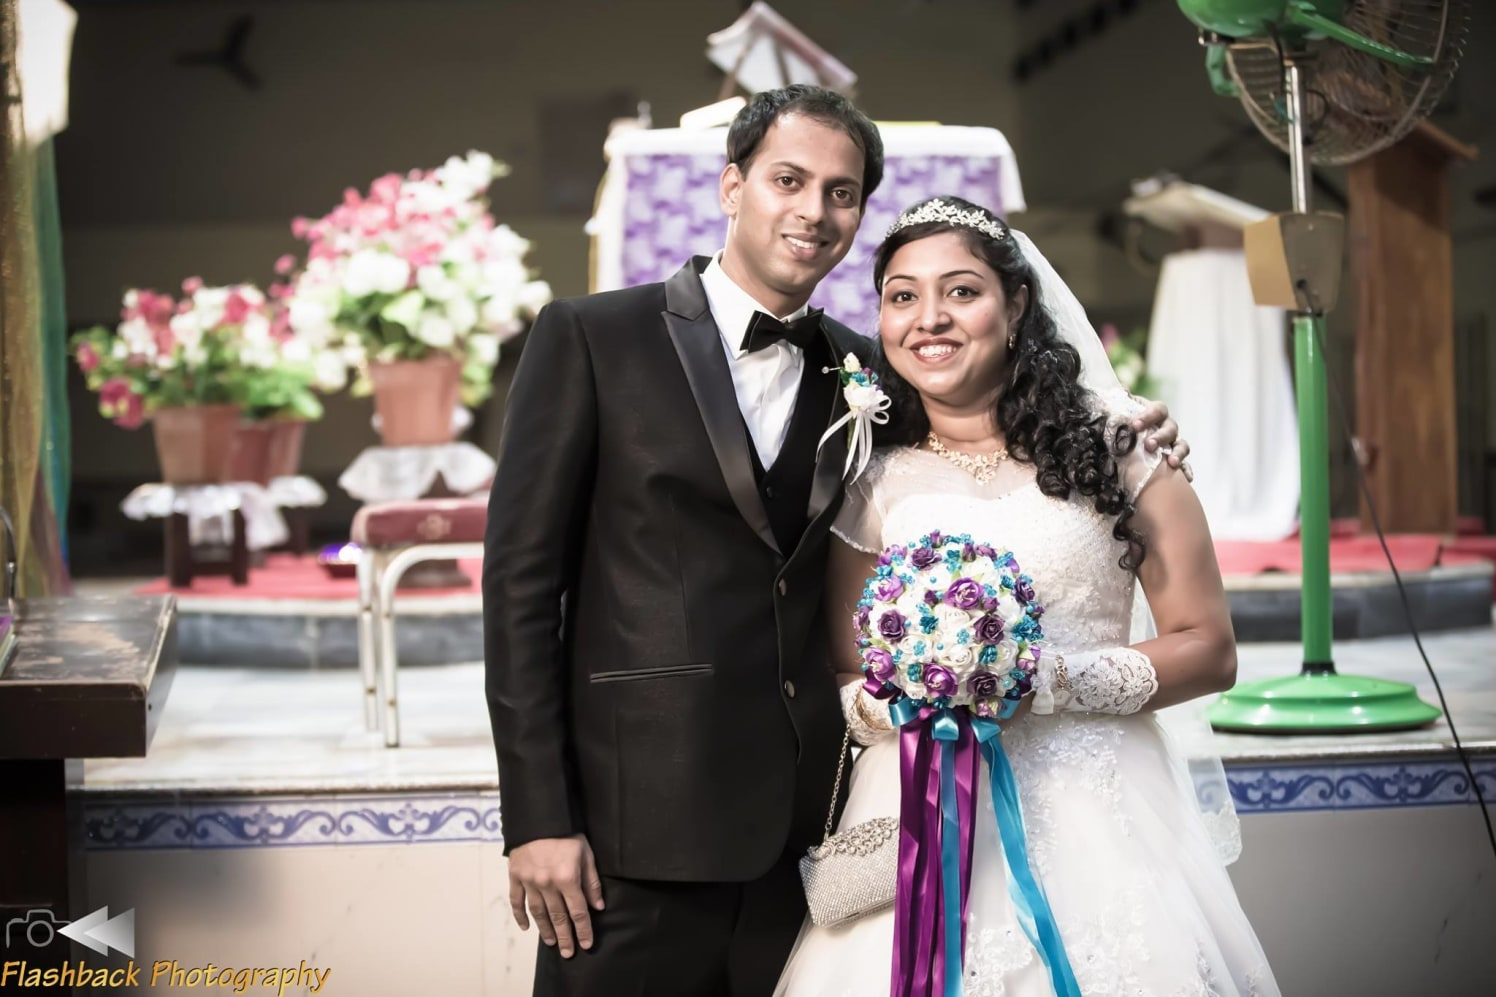 Bride and Groom Wearing Elegant White and Black Attire by Lloyd Bangera Wedding-photography | Weddings Photos & Ideas